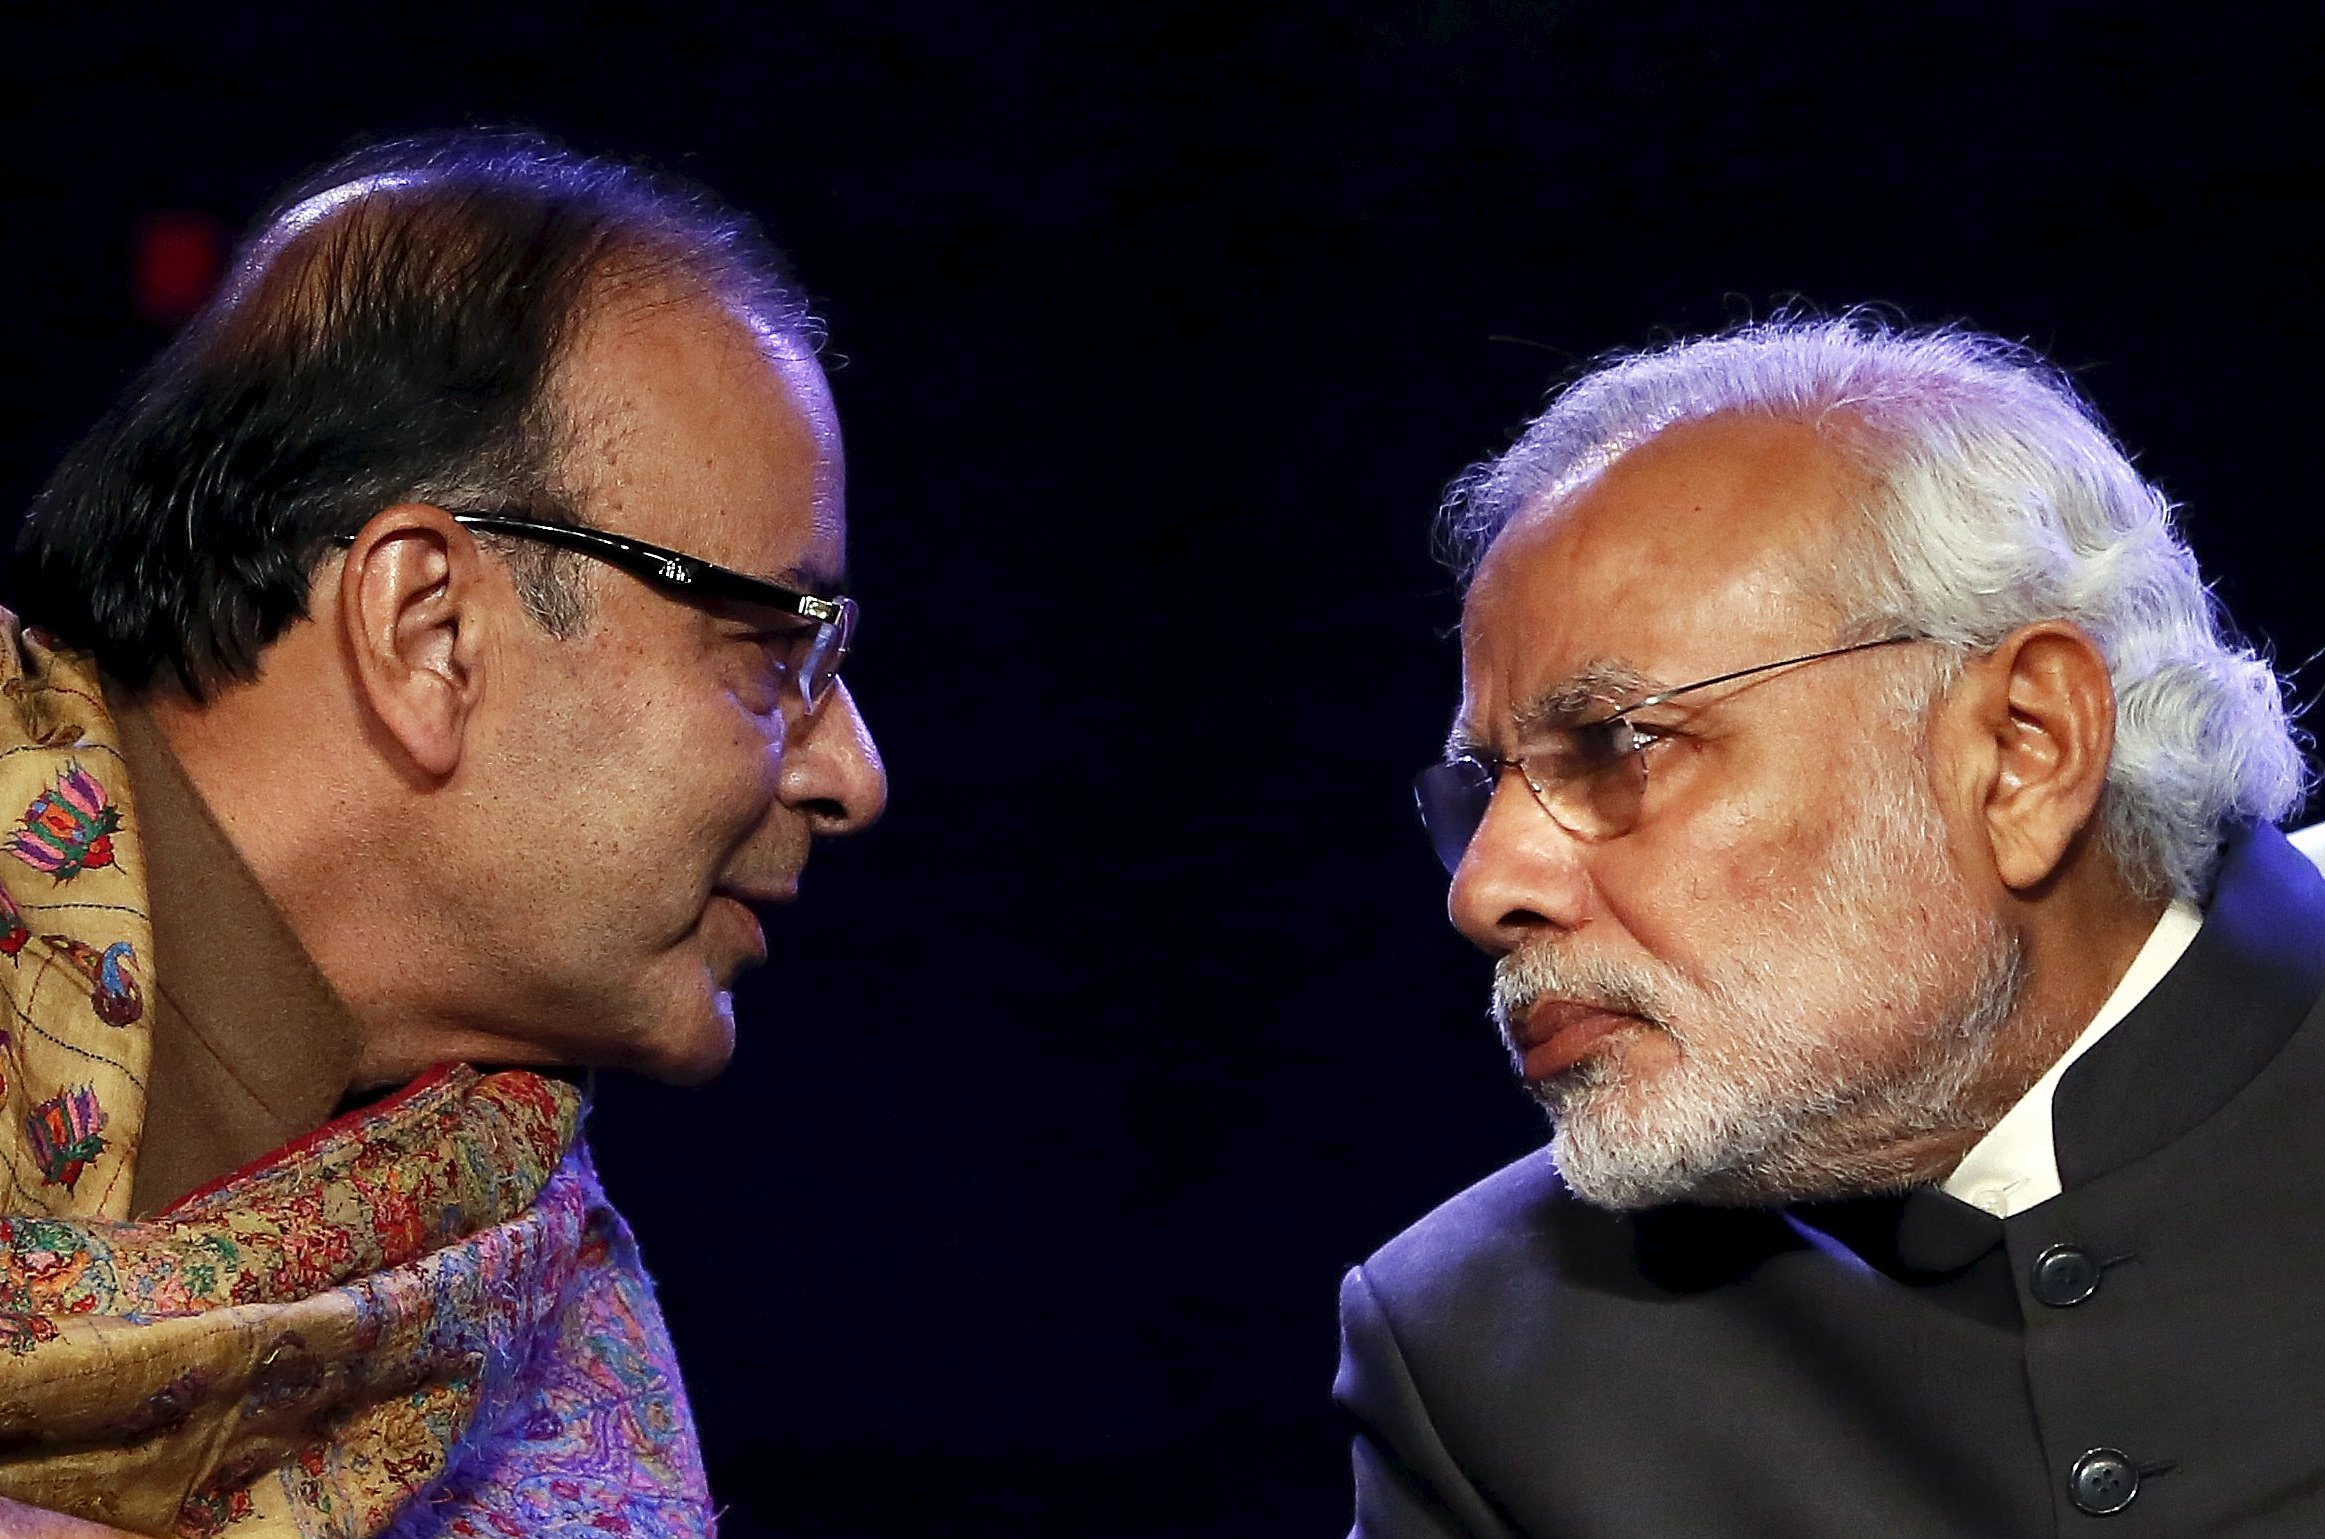 Indian Prime Minister Narendra Modi (R) listens to Finance Minister Arun Jaitley during the Global Business Summit in New Delhi, India, in this January 16, 2015 file photo. After a drubbing in a state poll in November, Modi wants to overhaul his cabinet to weed out underperformers and improve his government's image. Problem is, several sources said, he can't find the right replacements.   REUTERS/Anindito Mukherjee/Files